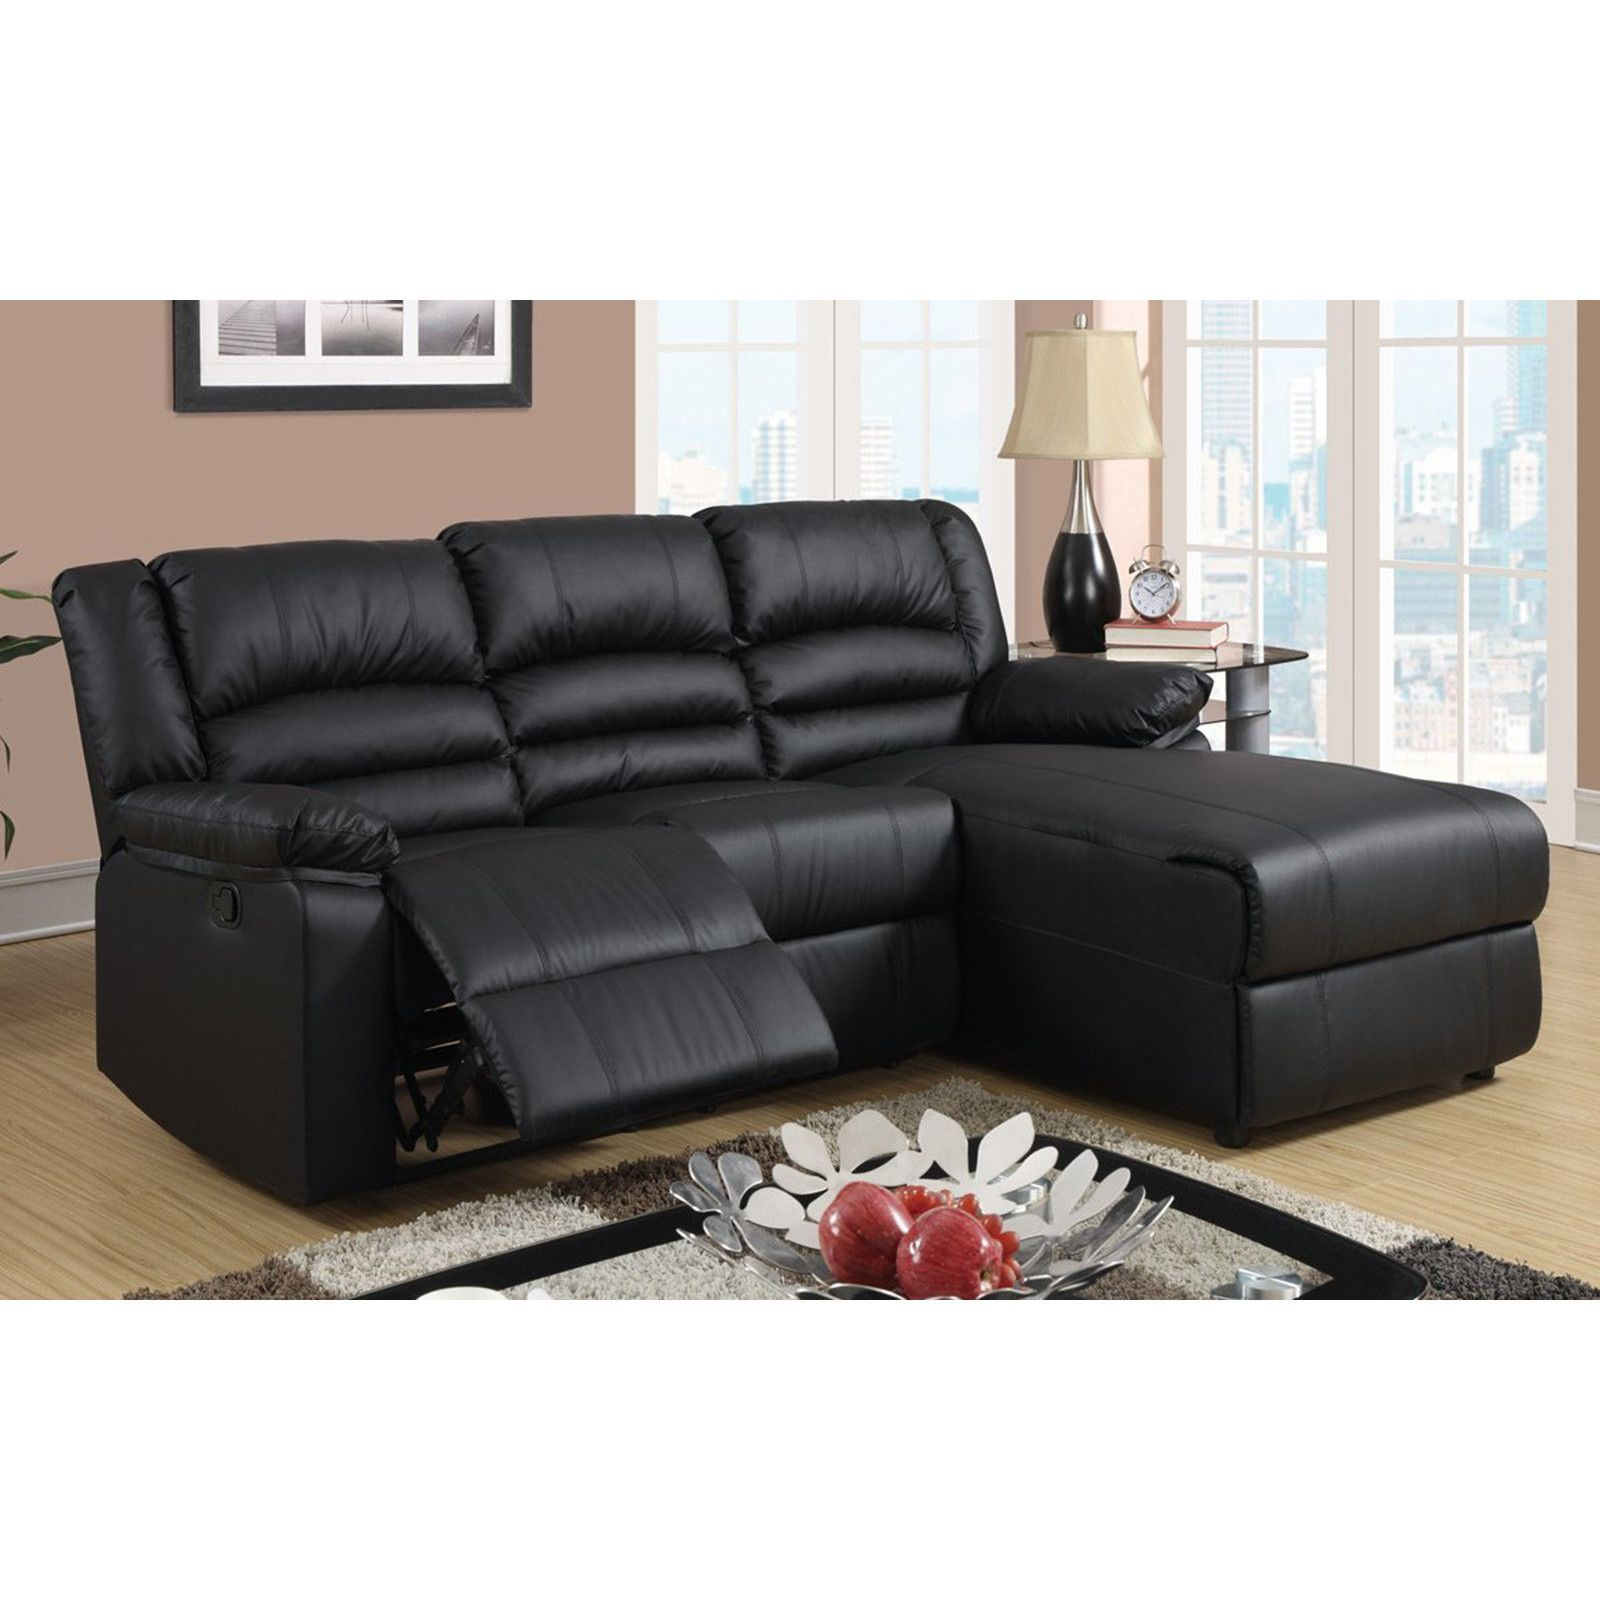 sofa sectional small sofas outdoor rooms inspirations sectionals for new luxury fresh spaces living awesome sale